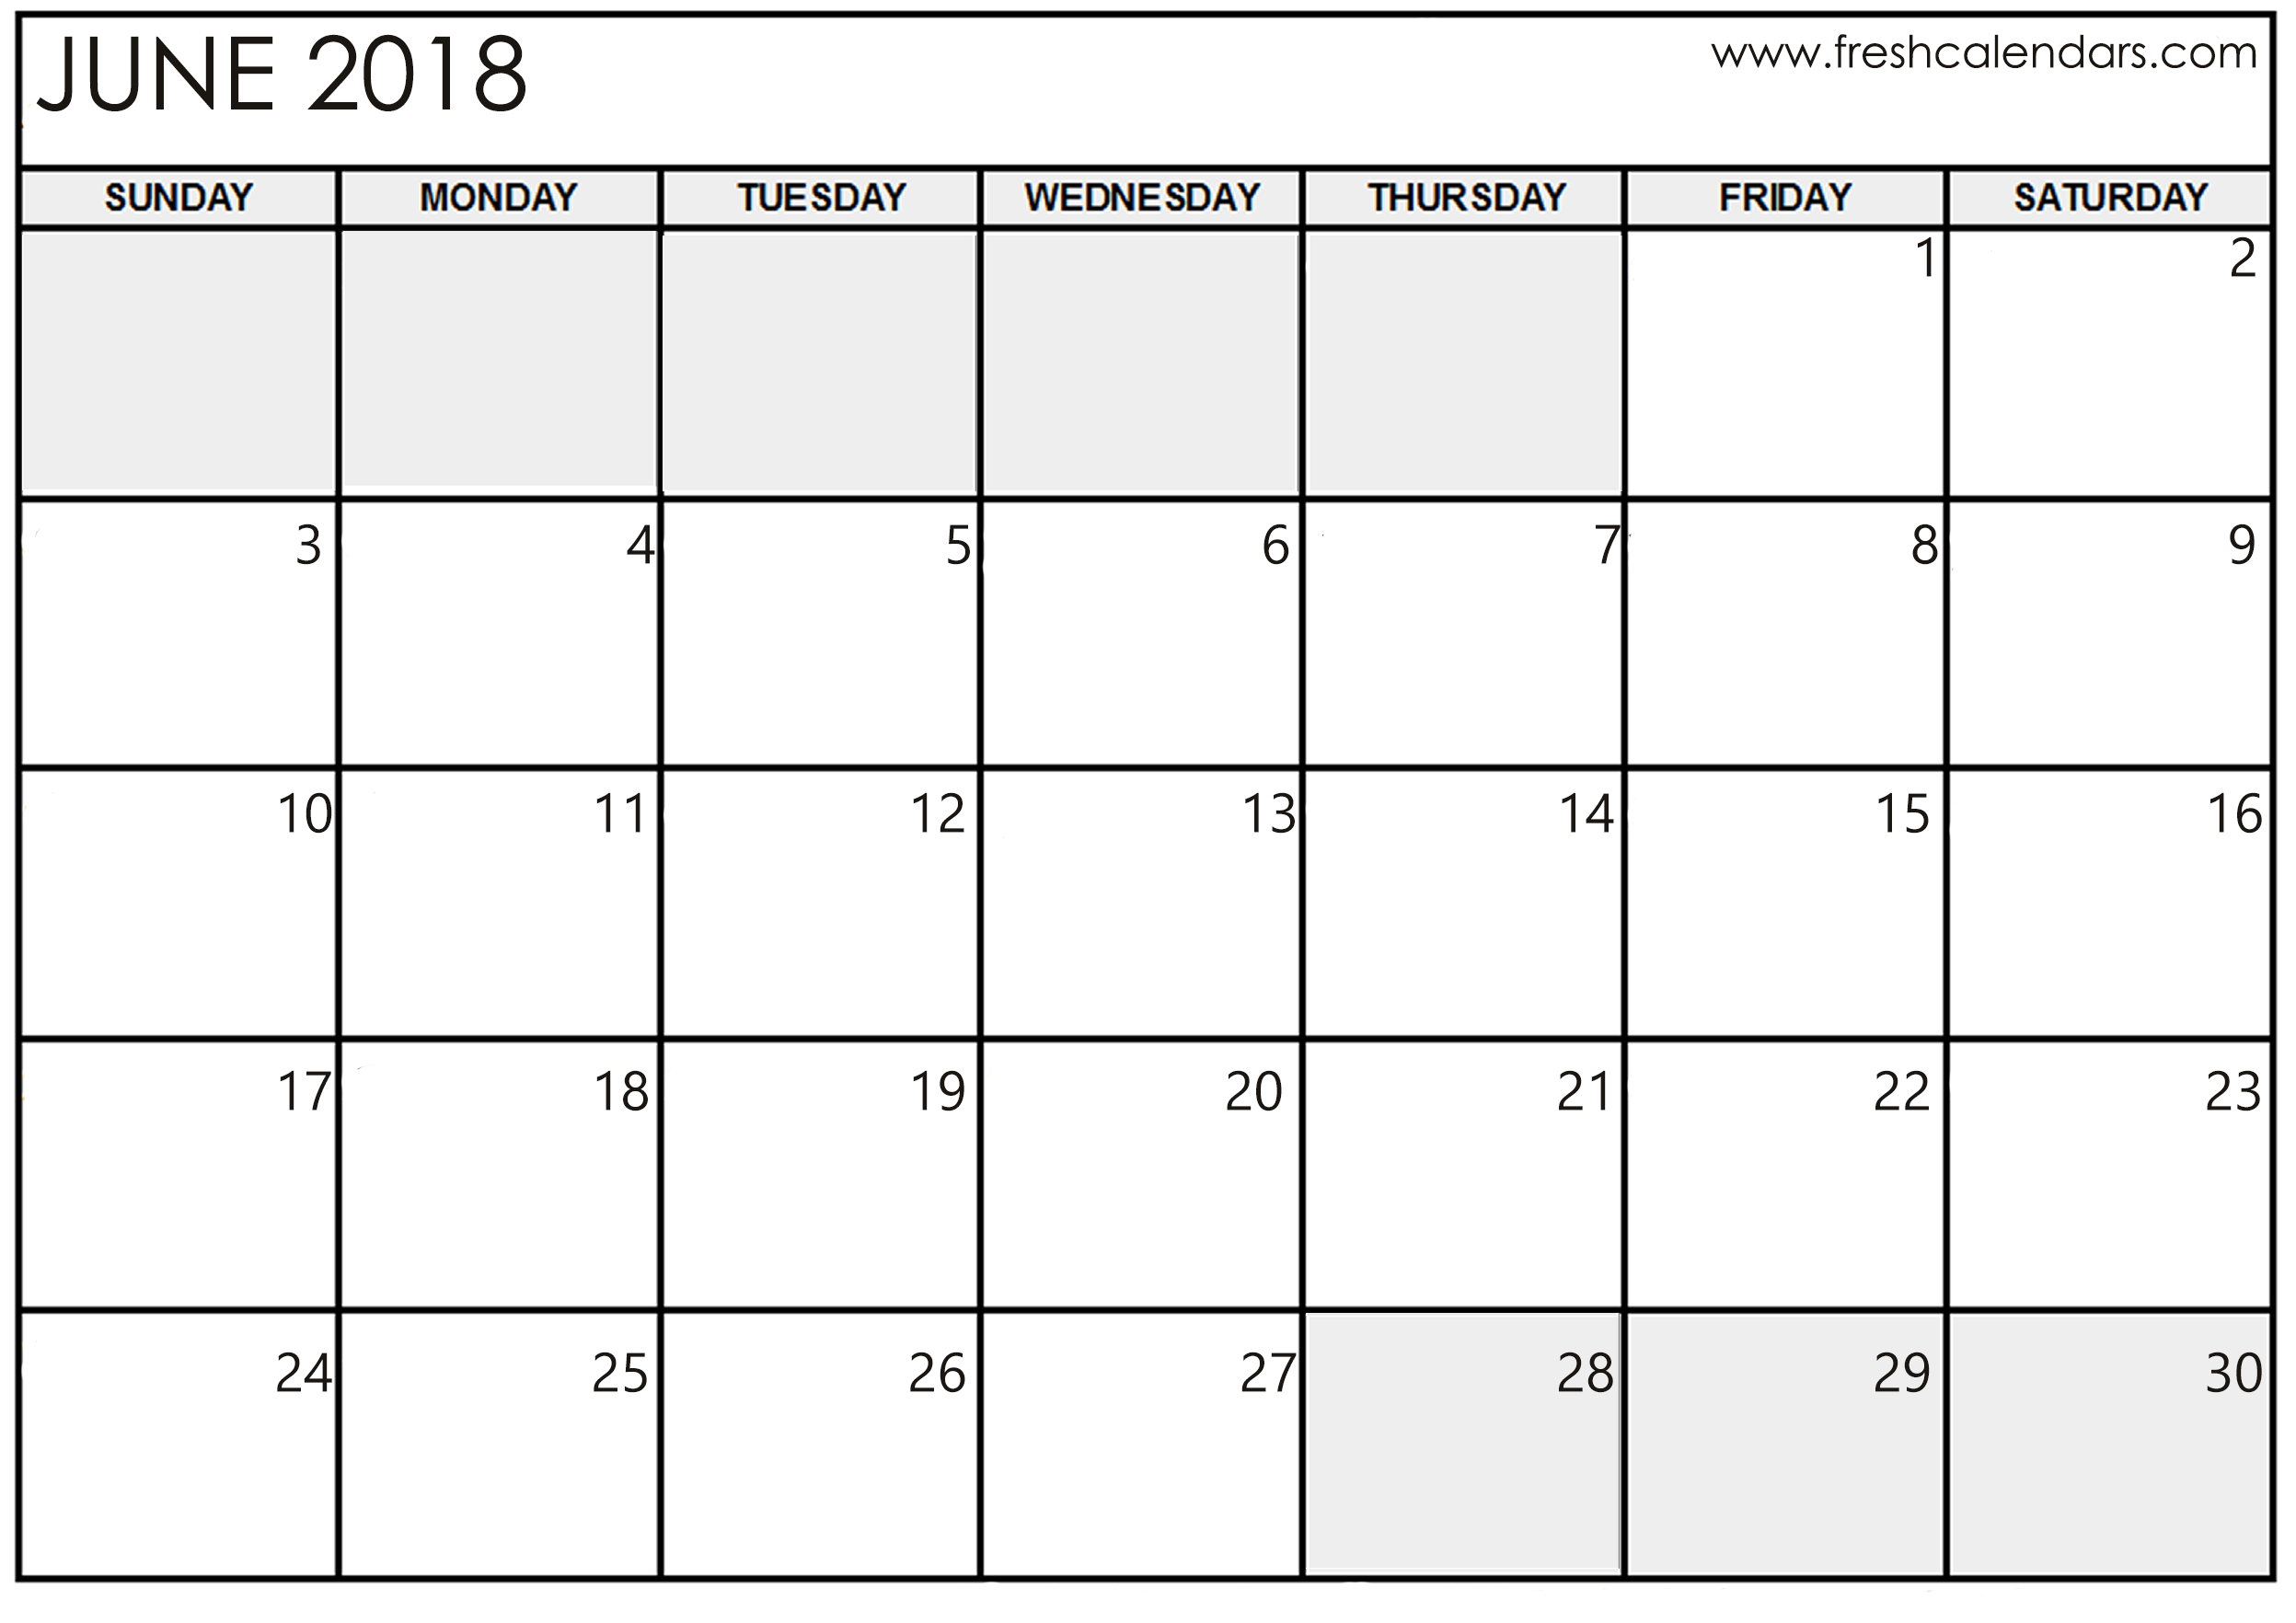 Calendar Template For June 2018